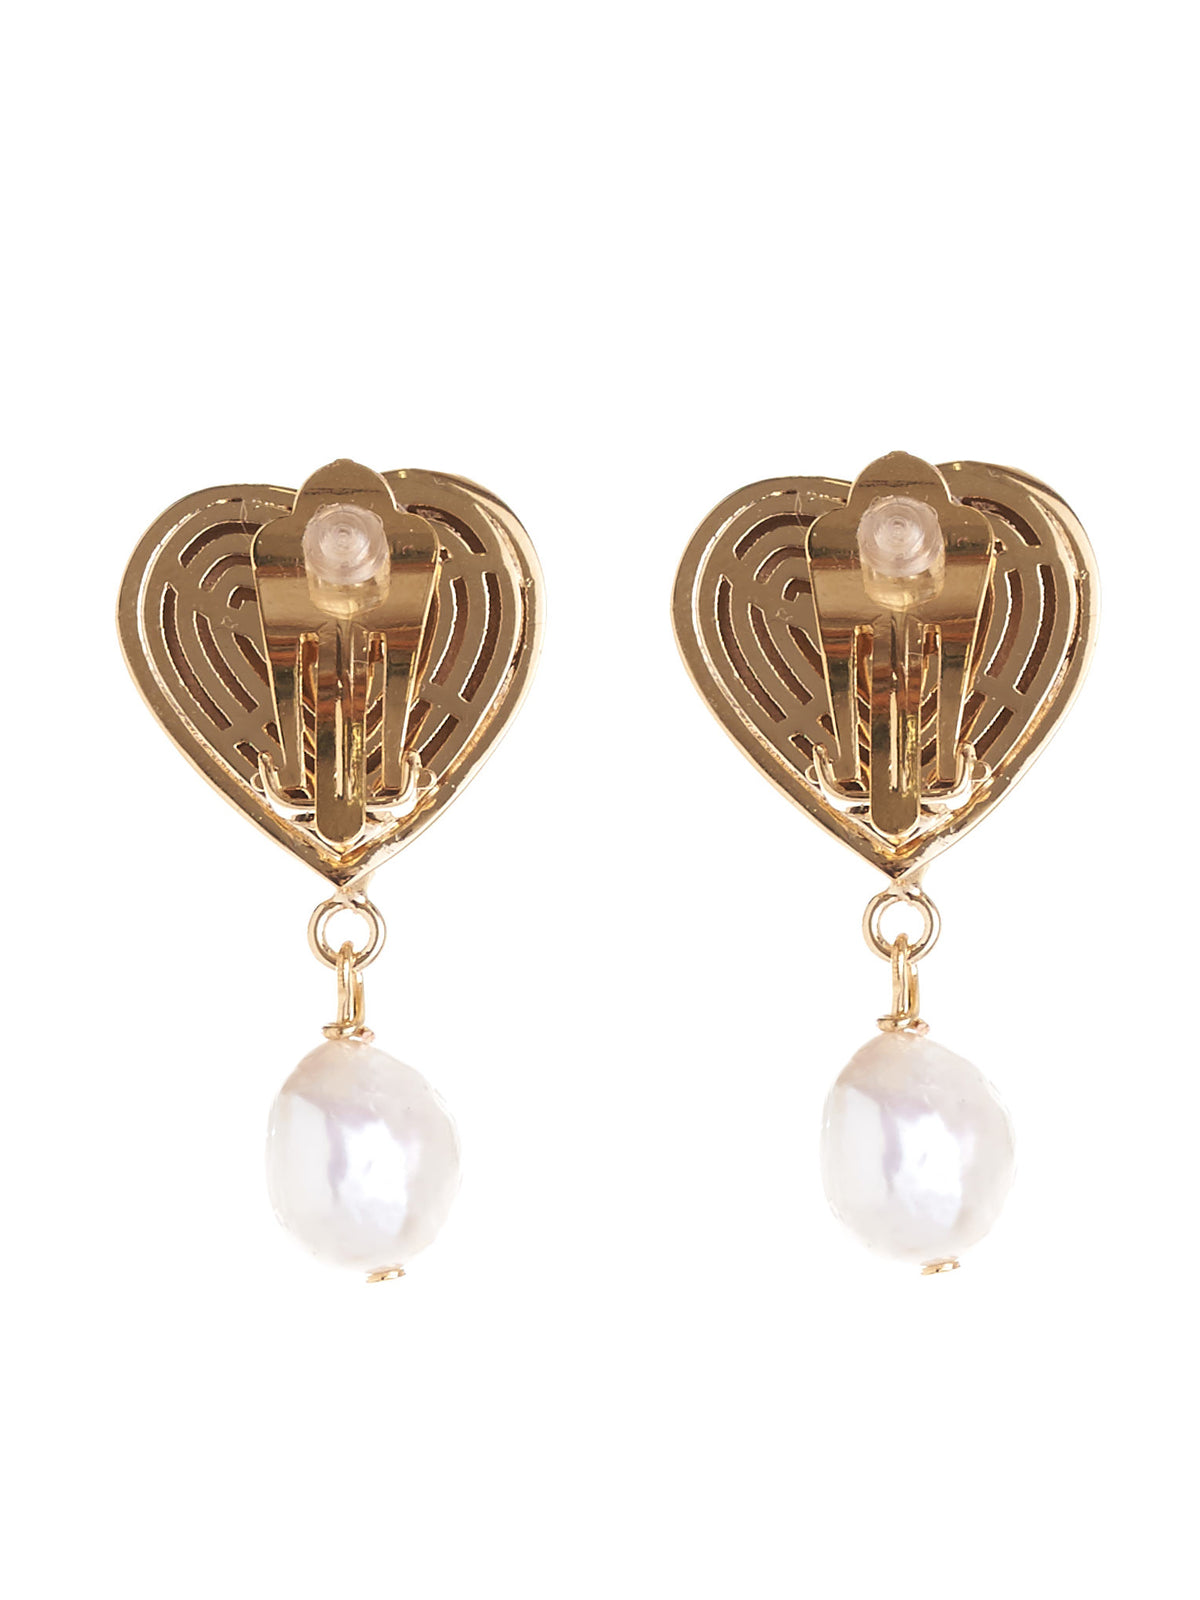 Eden Love Earrings (EDEN-LOVE-GOLD-PLATED-CRYSTALS)